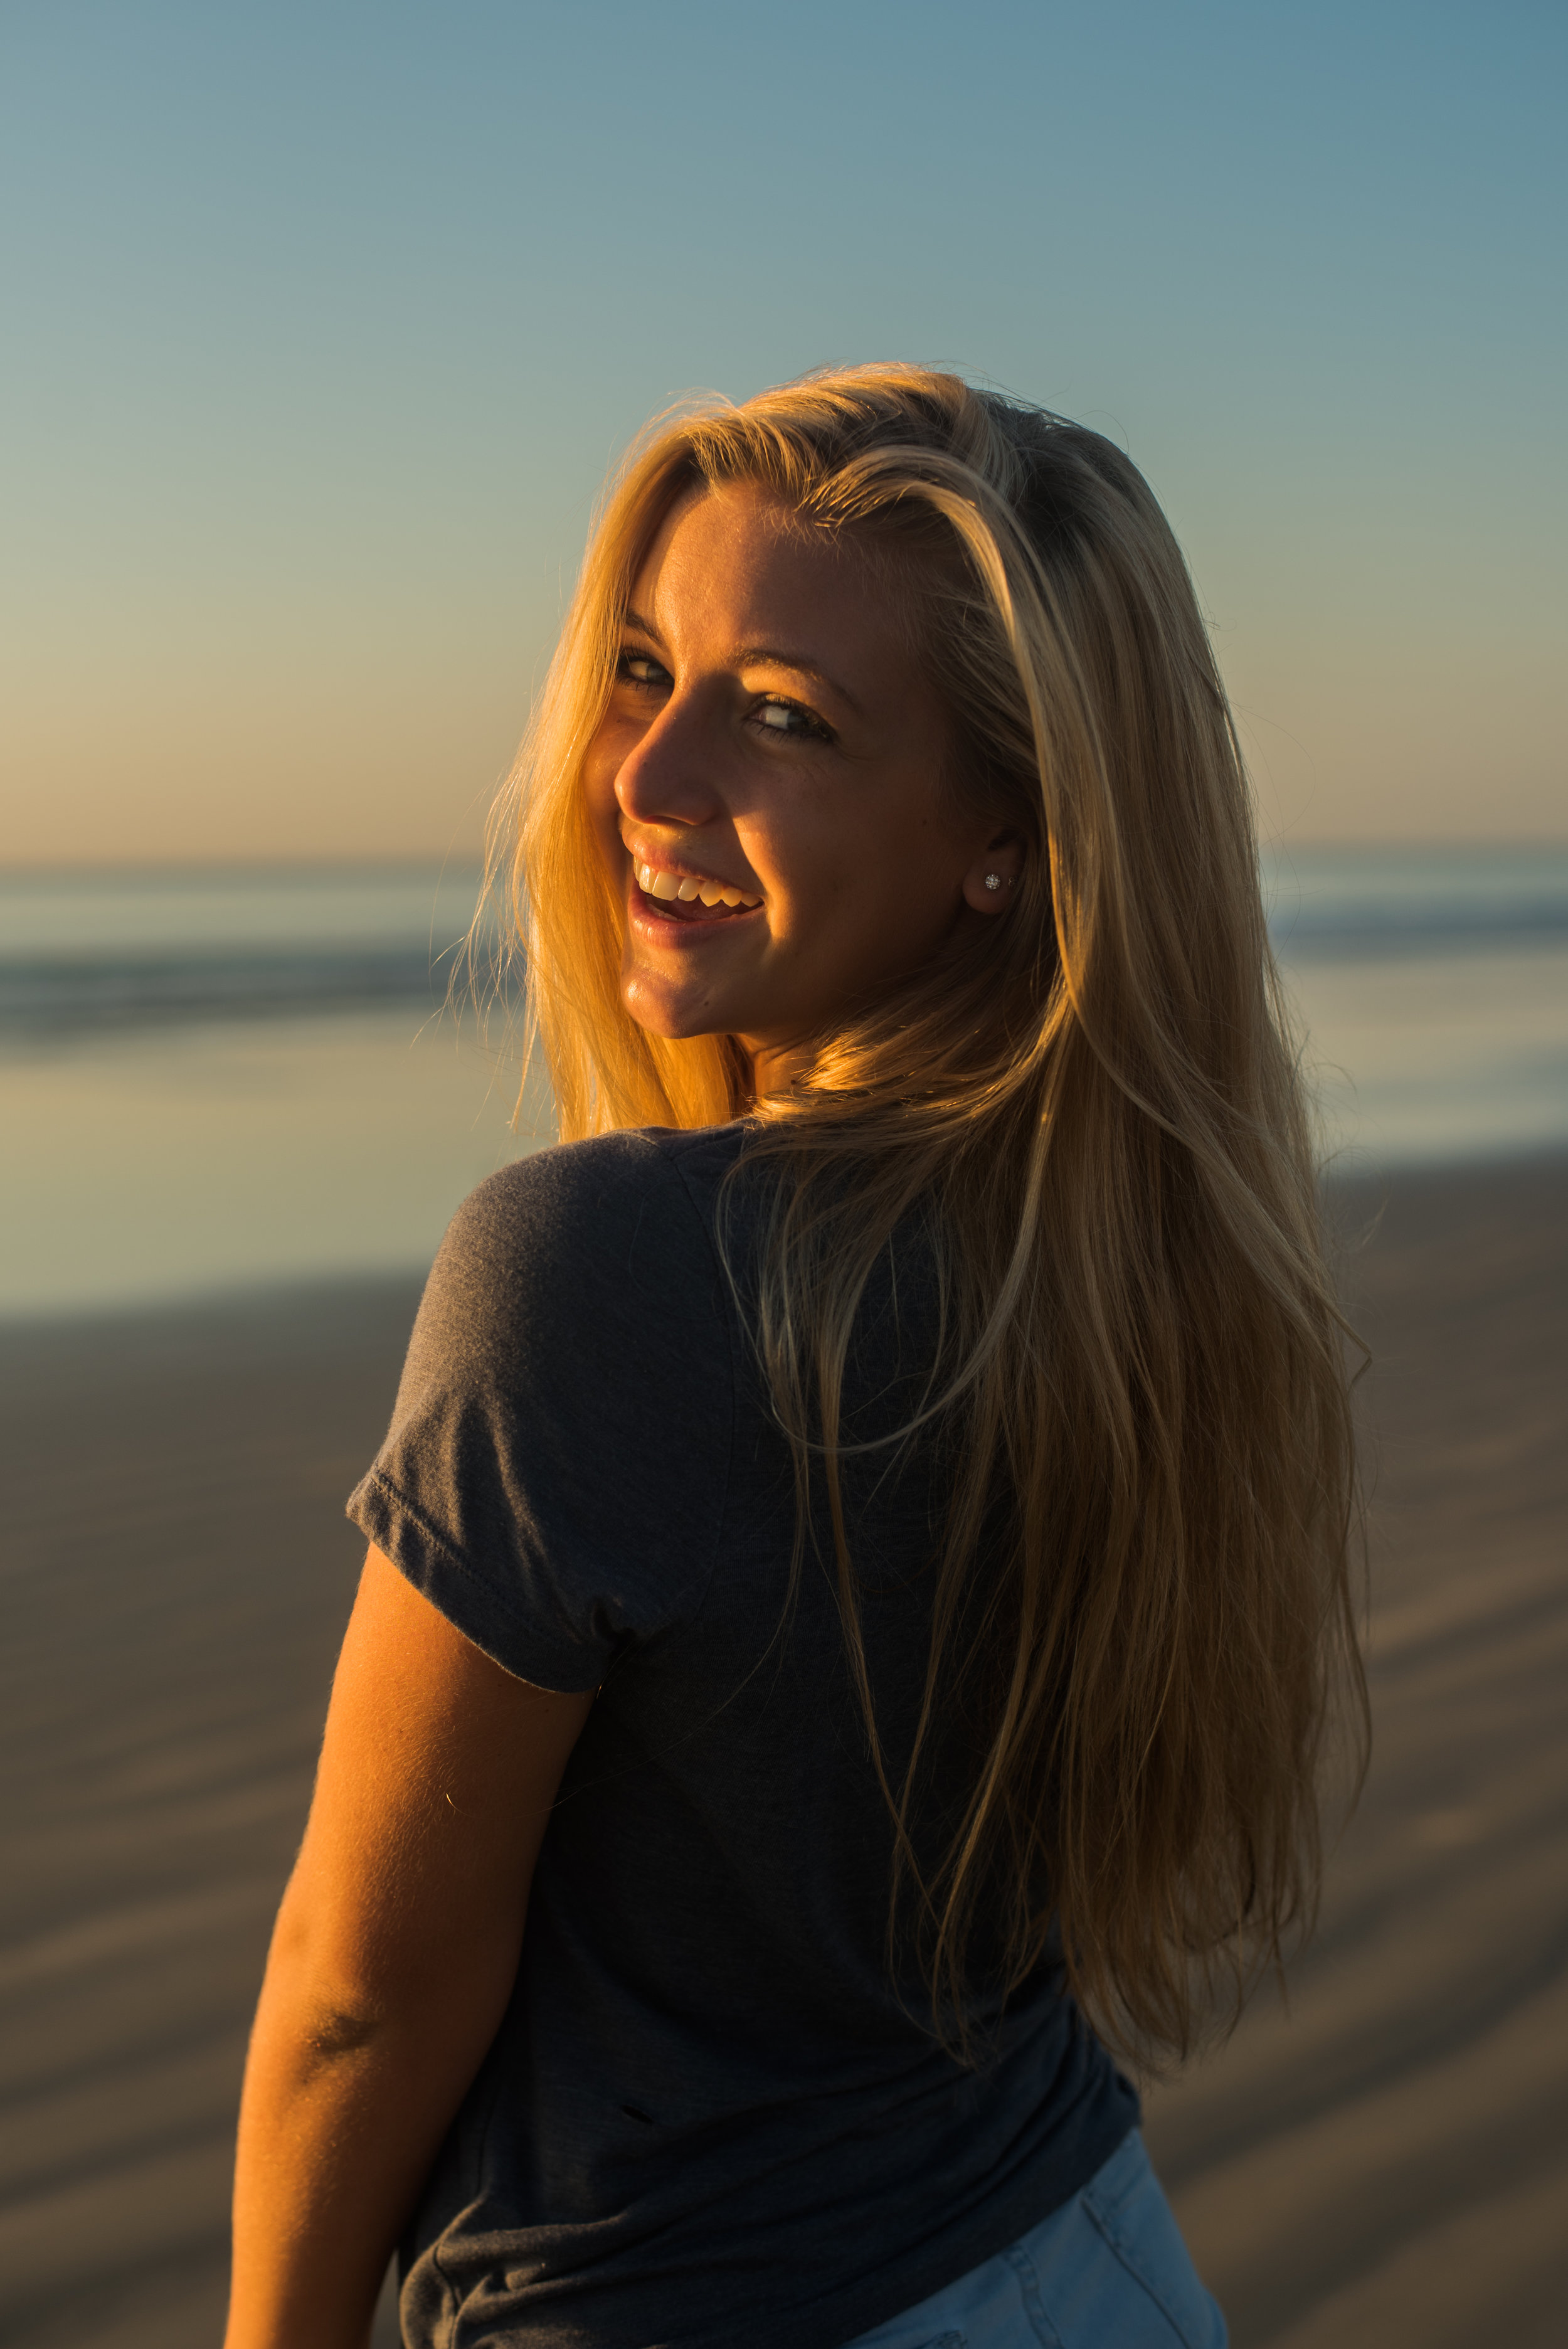 maddie-cocoa-beach-senior-photo-1-24.jpg